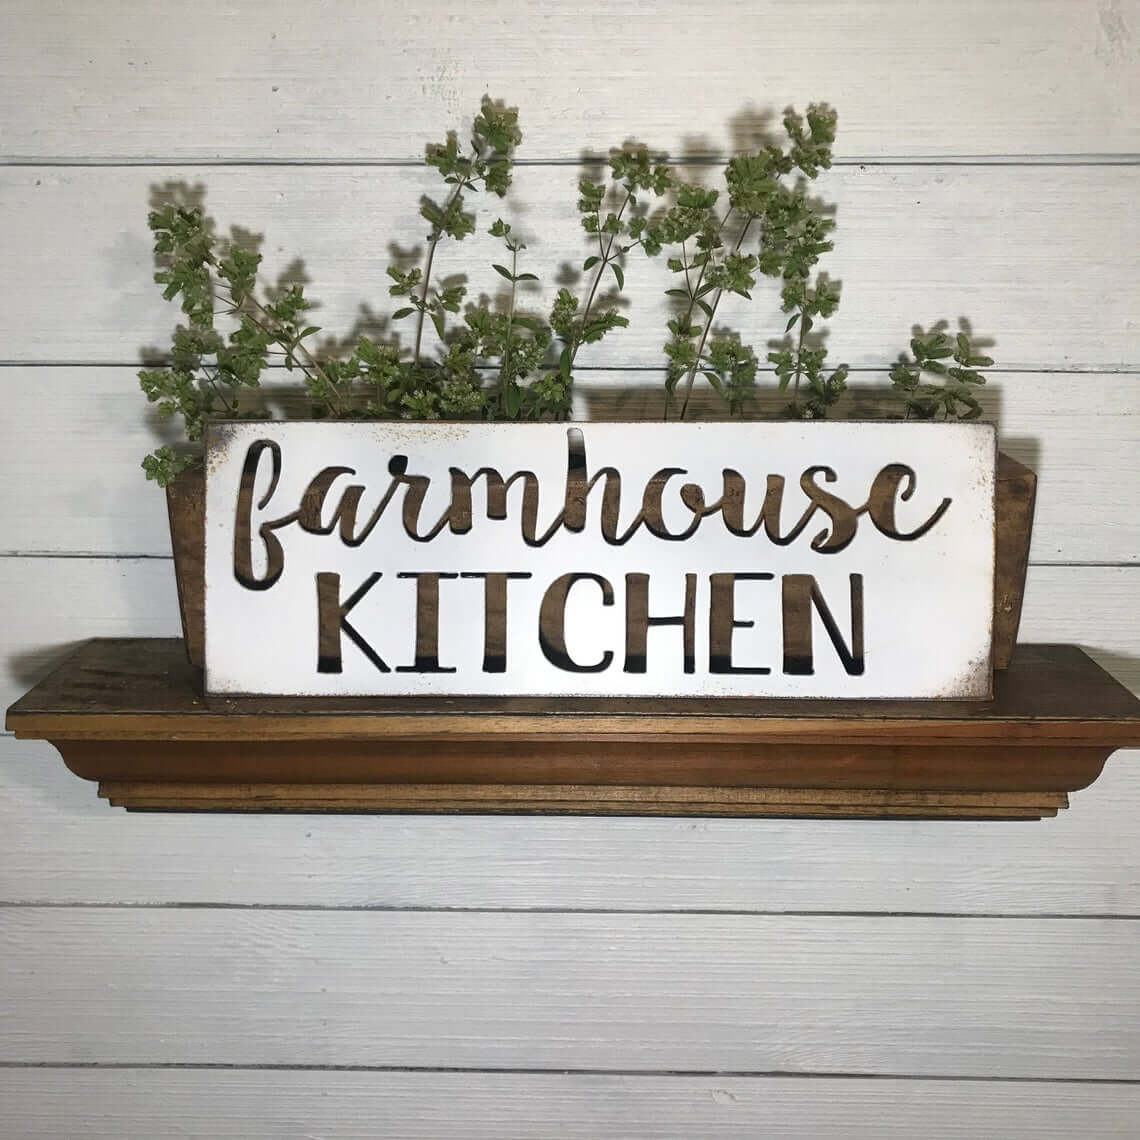 Rustic Metal Sign with Farmhouse Kitchen Cutout